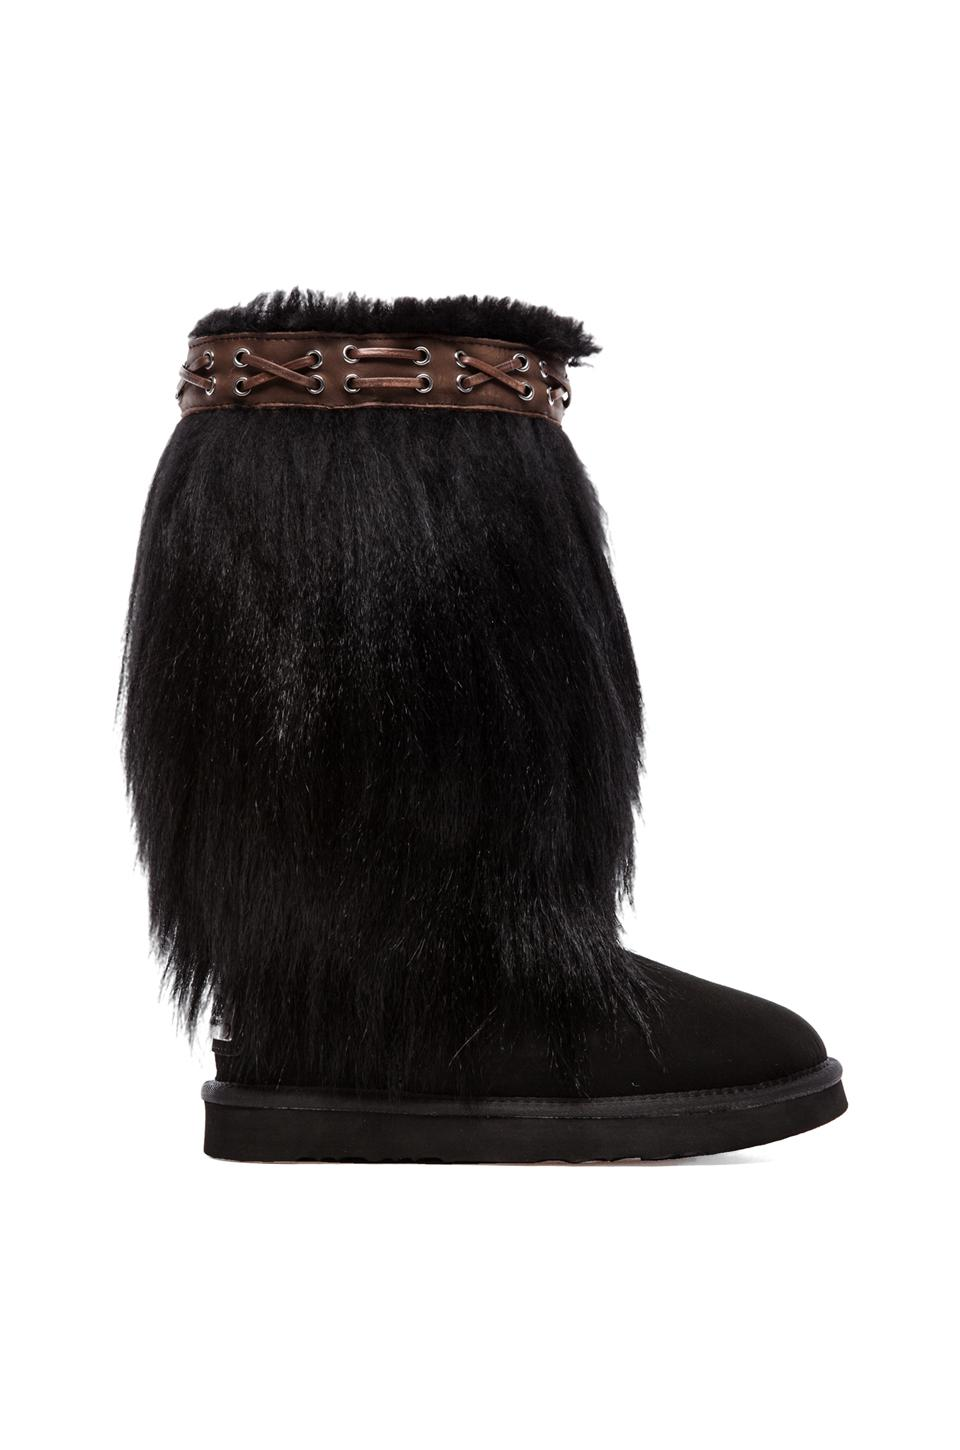 Australia Luxe Collective Nessie with Sheepskin in Black